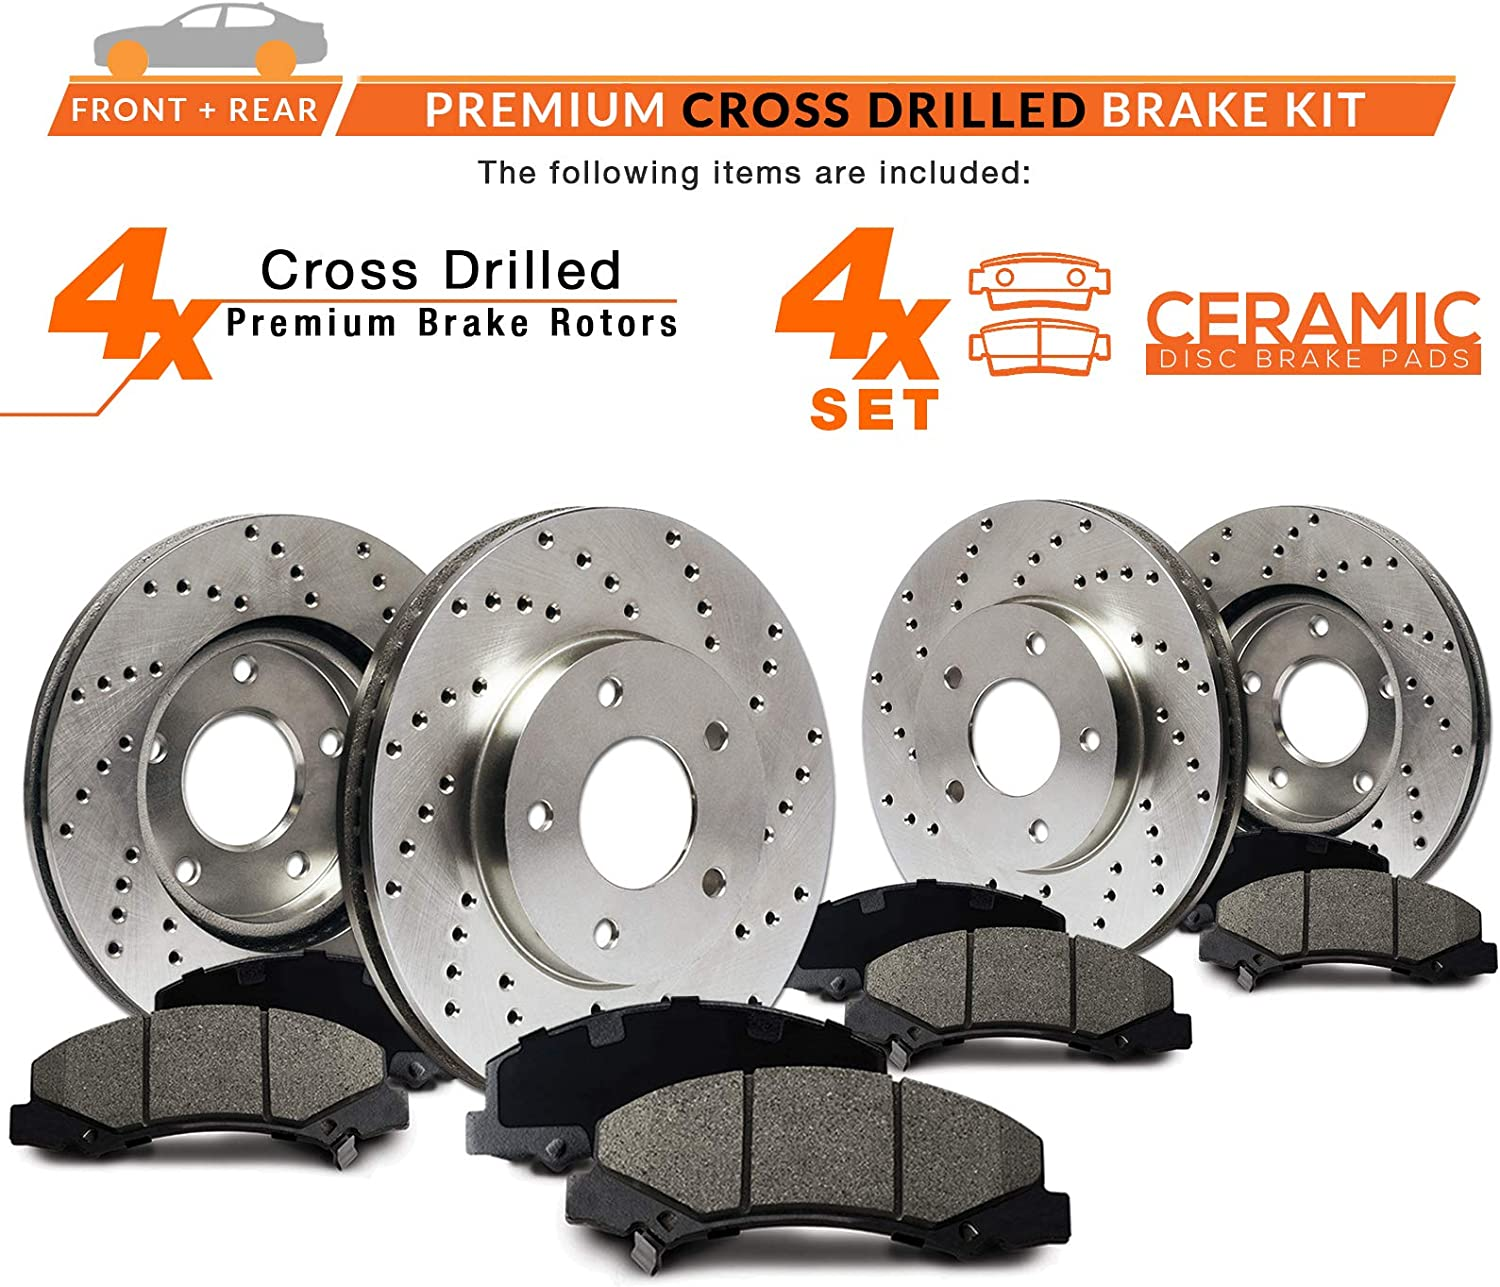 KT007523 Premium Cross Drilled Rotors + Ceramic Pads Fits: 2006 06 Nissan Altima; Non SE-R Models Max Brakes Front /& Rear Performance Brake Kit